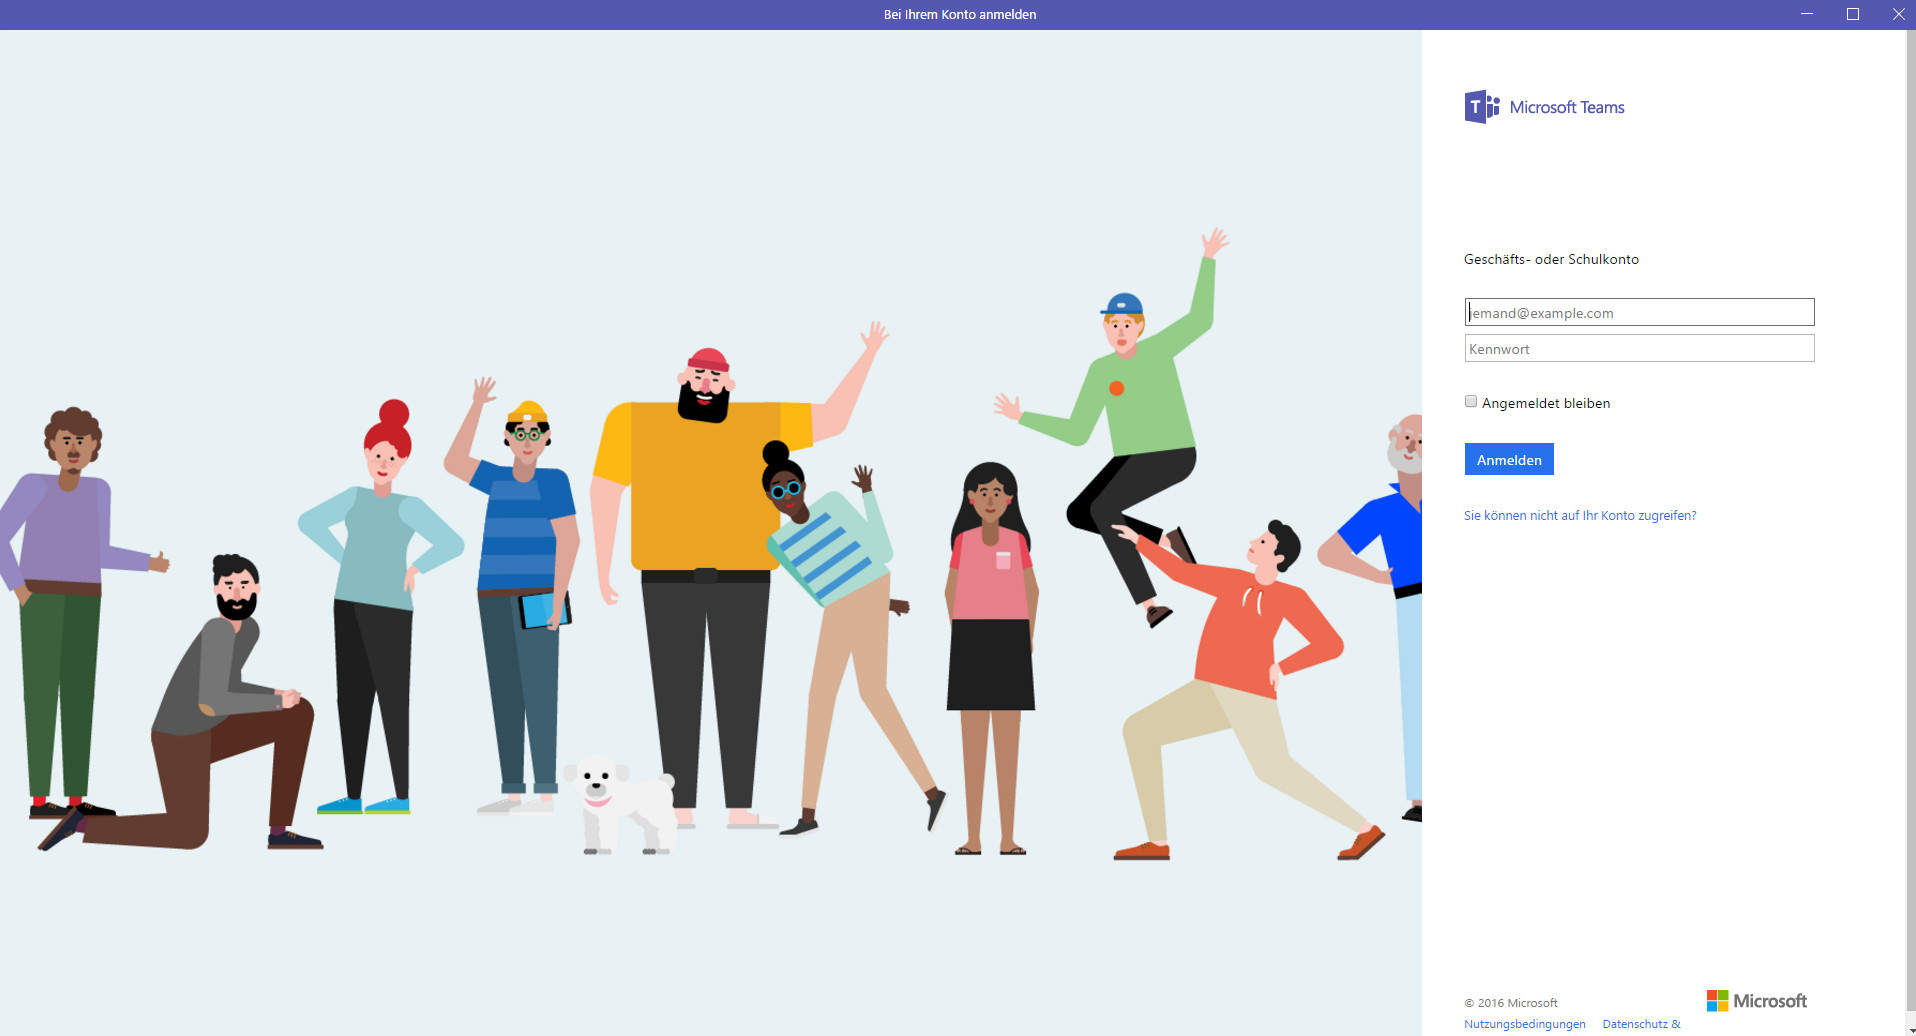 Welcome screen of Microsoft client app Teams: Start-up hippies say, 'Hi'?